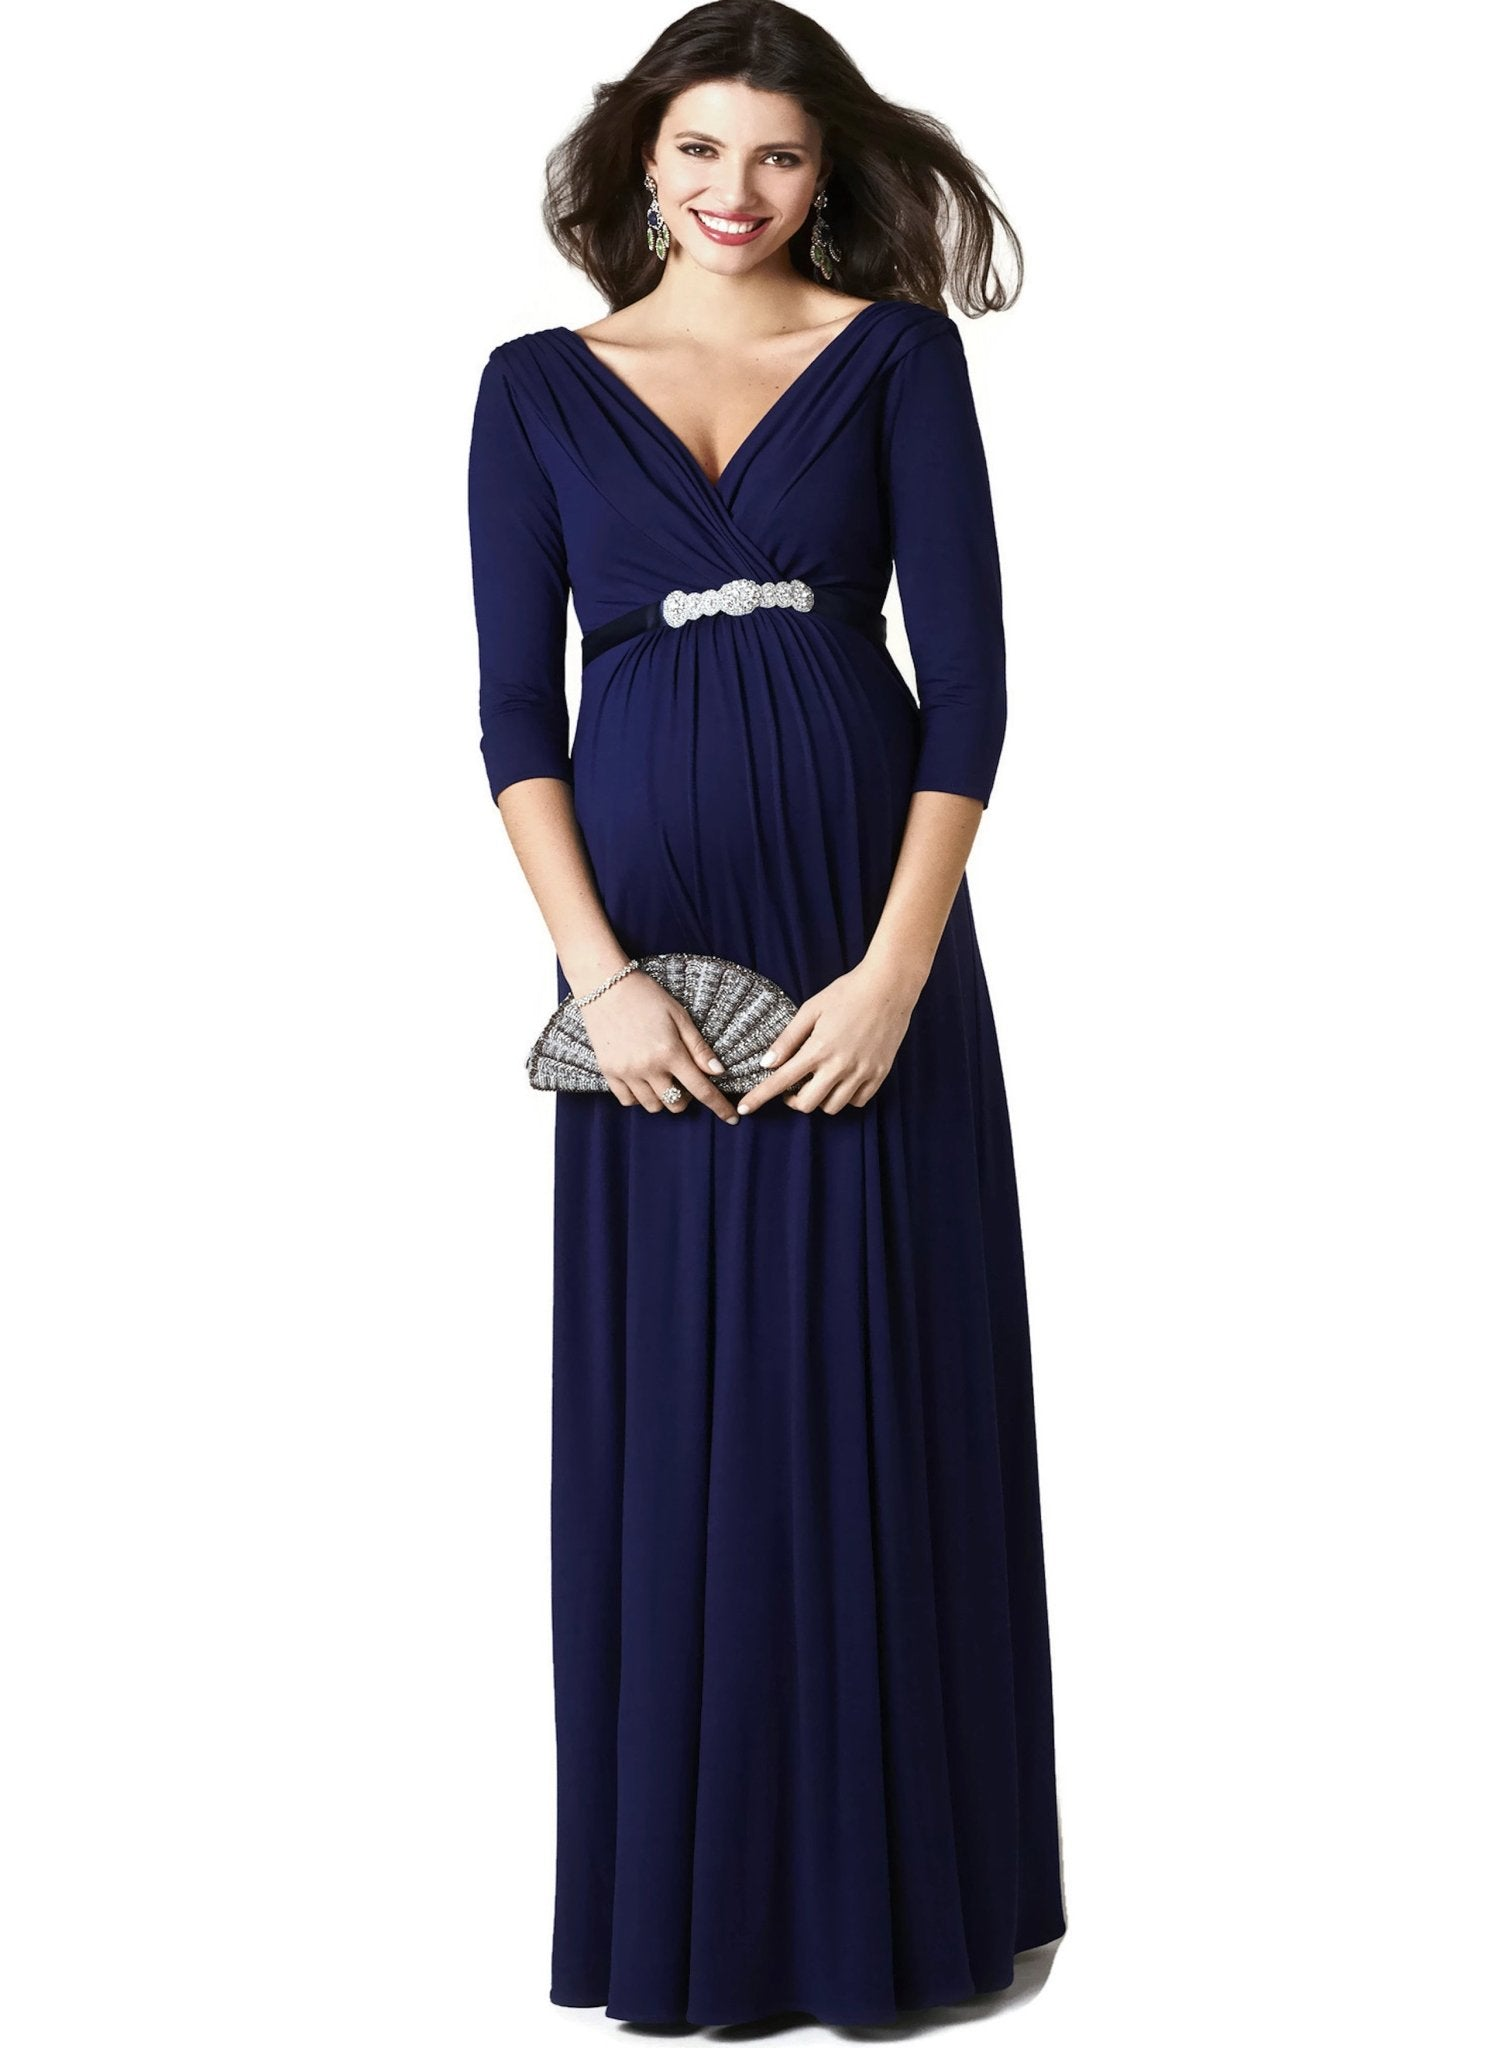 Willow Maternity Gown - Eclipse Blue - Mums and Bumps